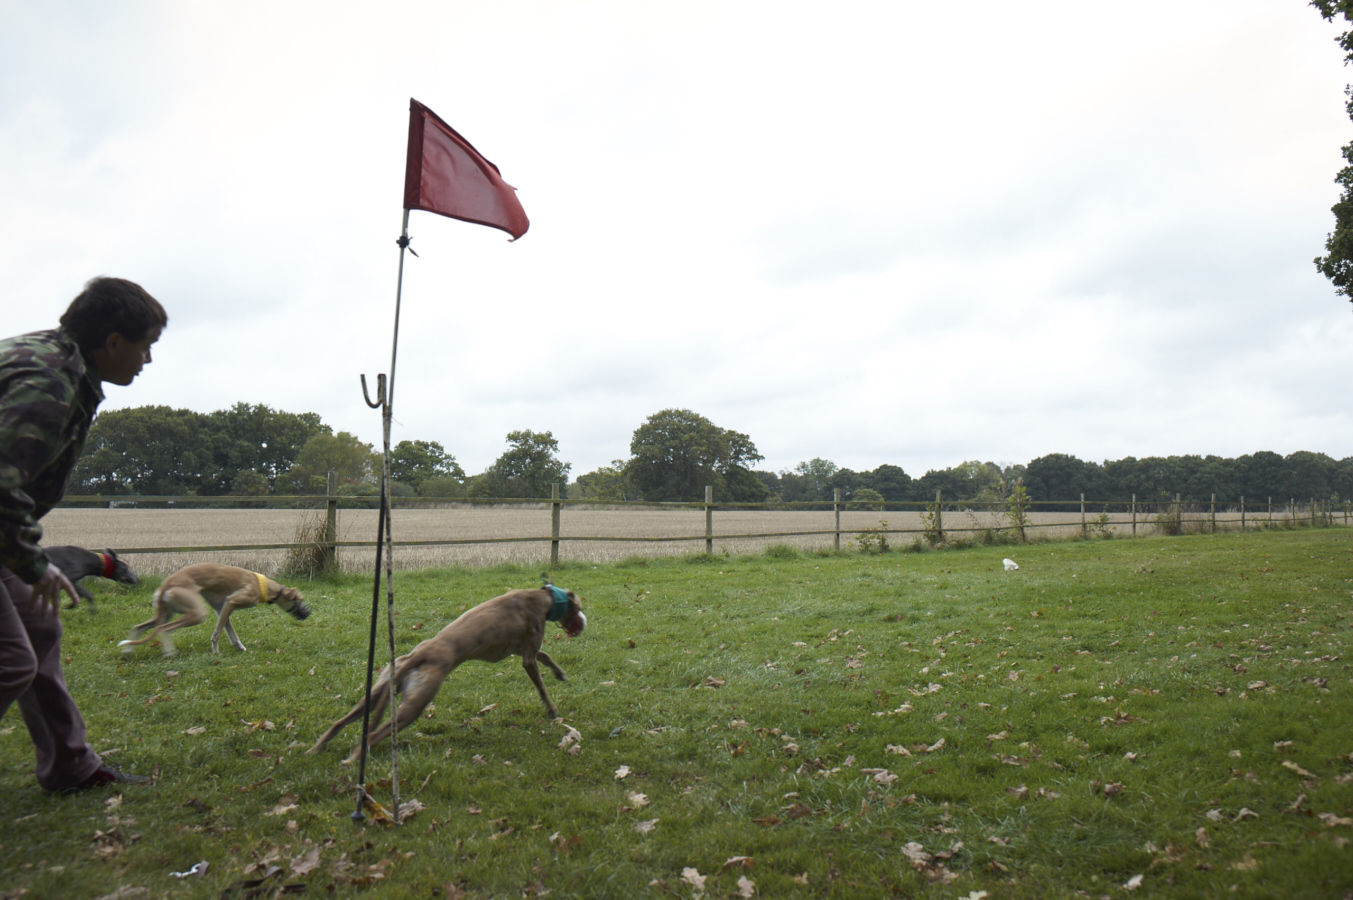 sussex_longdogs_L1006069.jpg